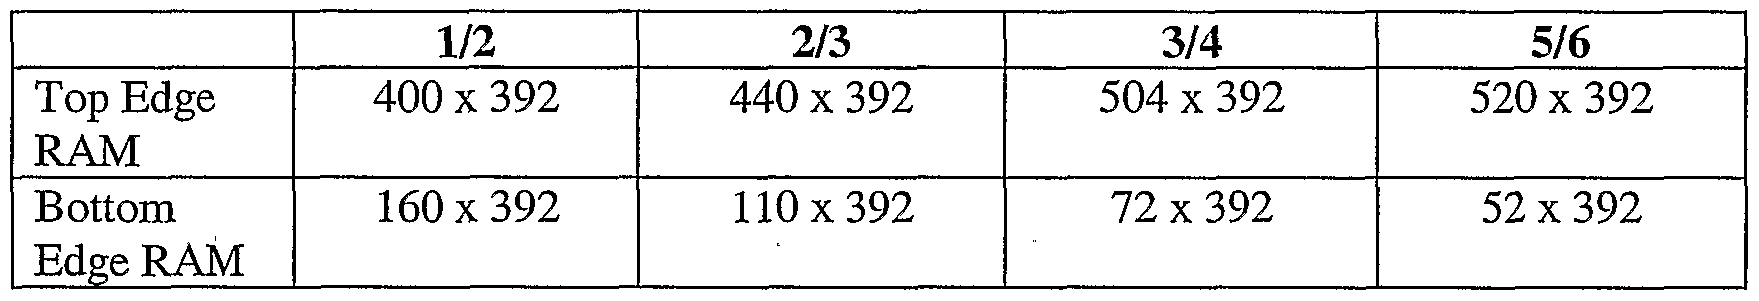 WO2004006441A2 - Method and system for memory management in